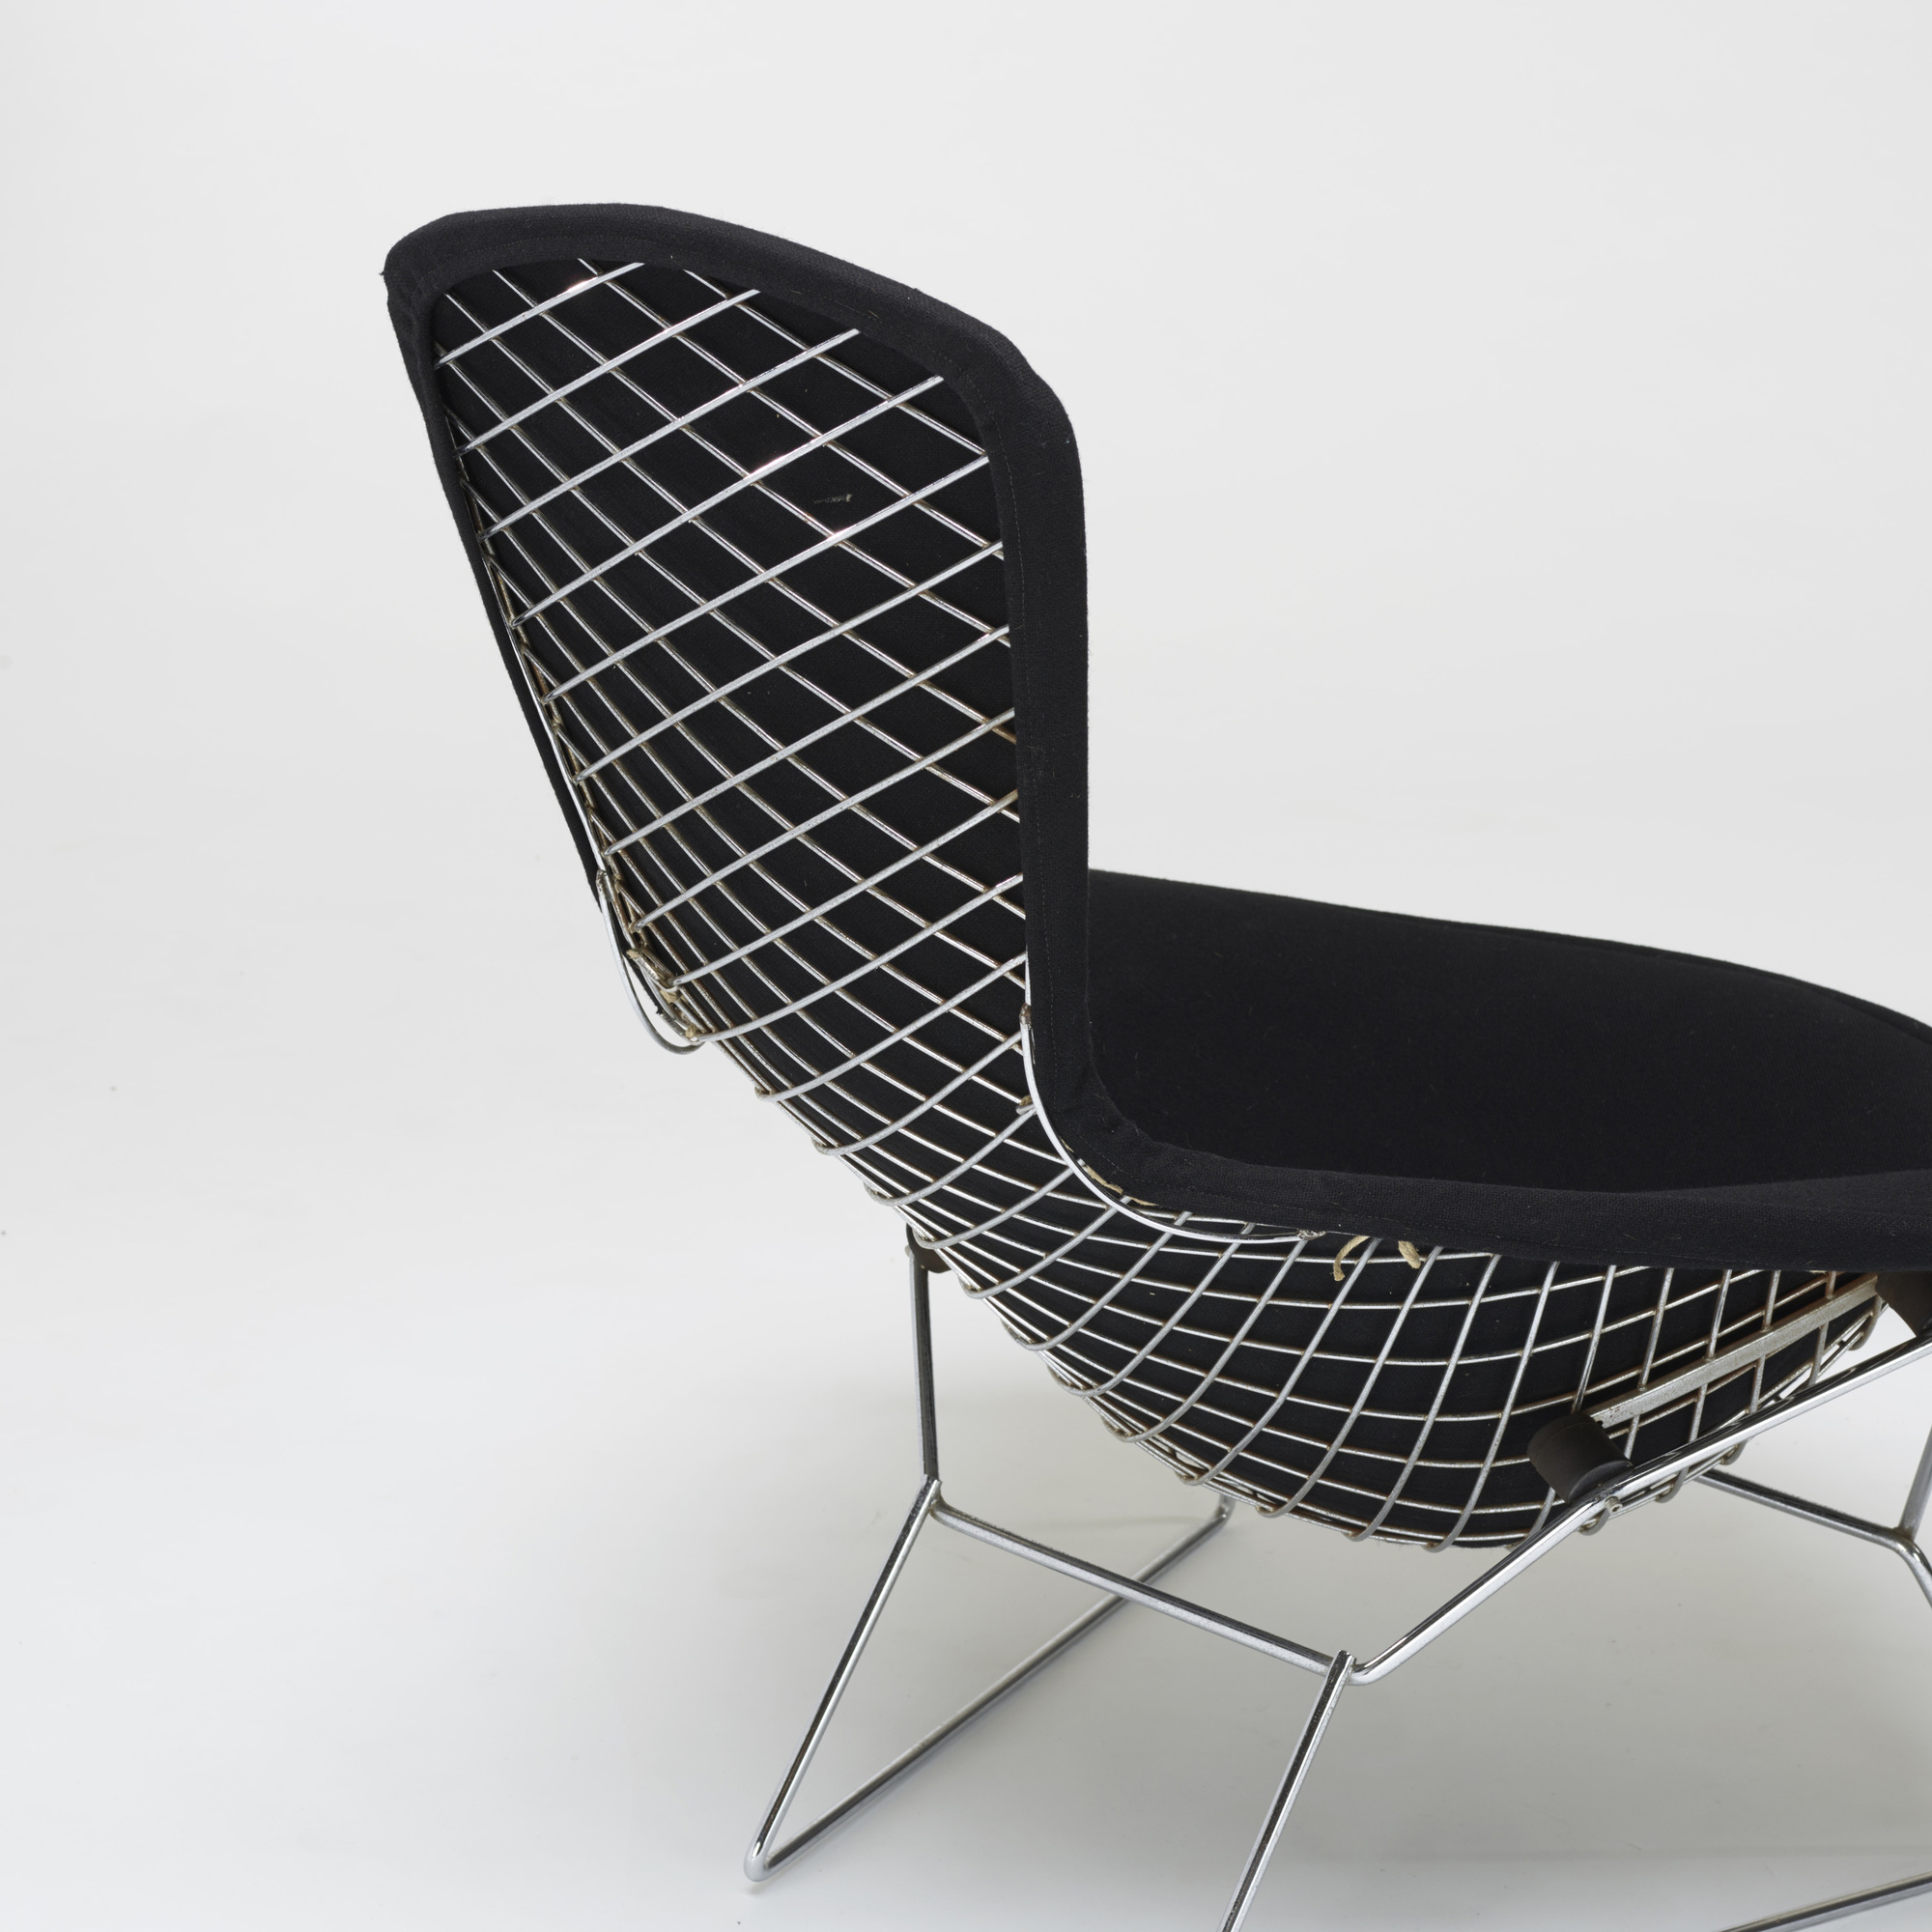 bertoia chaise simple charming coussin chaise bertoia pack de chaise wire chair rpliques. Black Bedroom Furniture Sets. Home Design Ideas